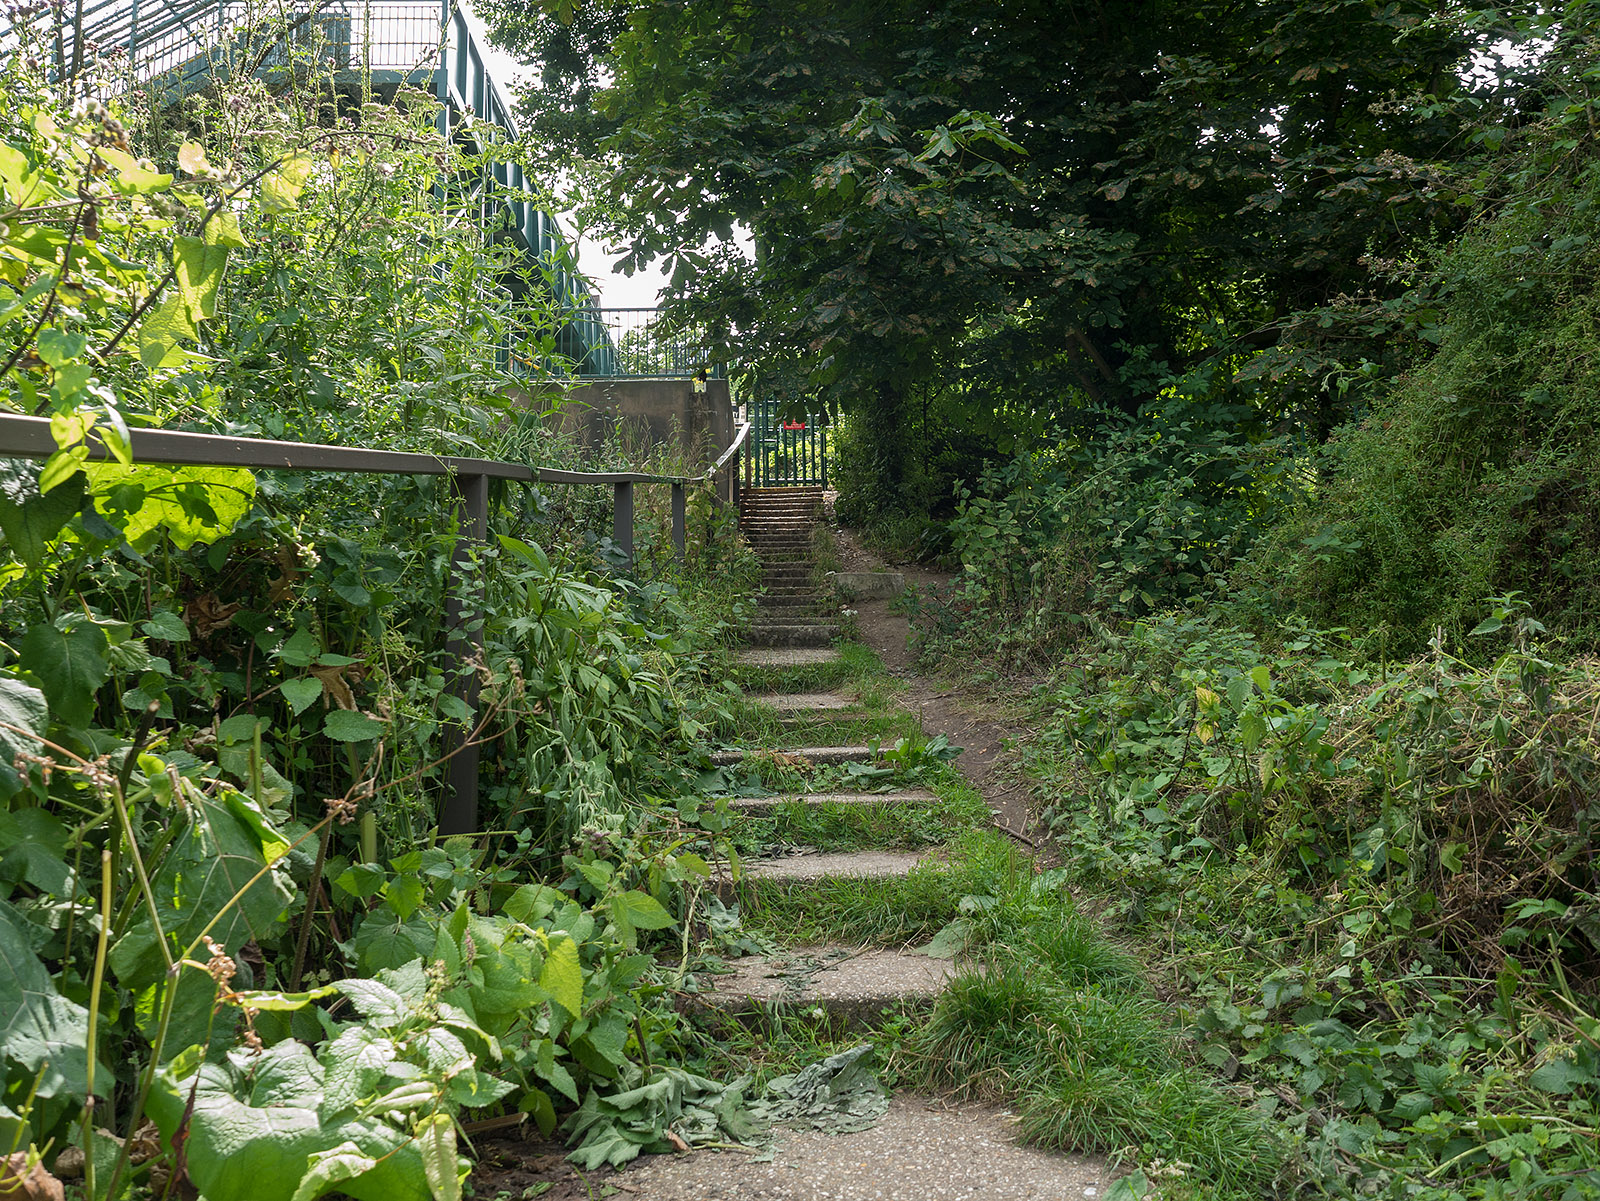 Diversion away from the river west of Tilehurst station, due to inaccessible path through Purley